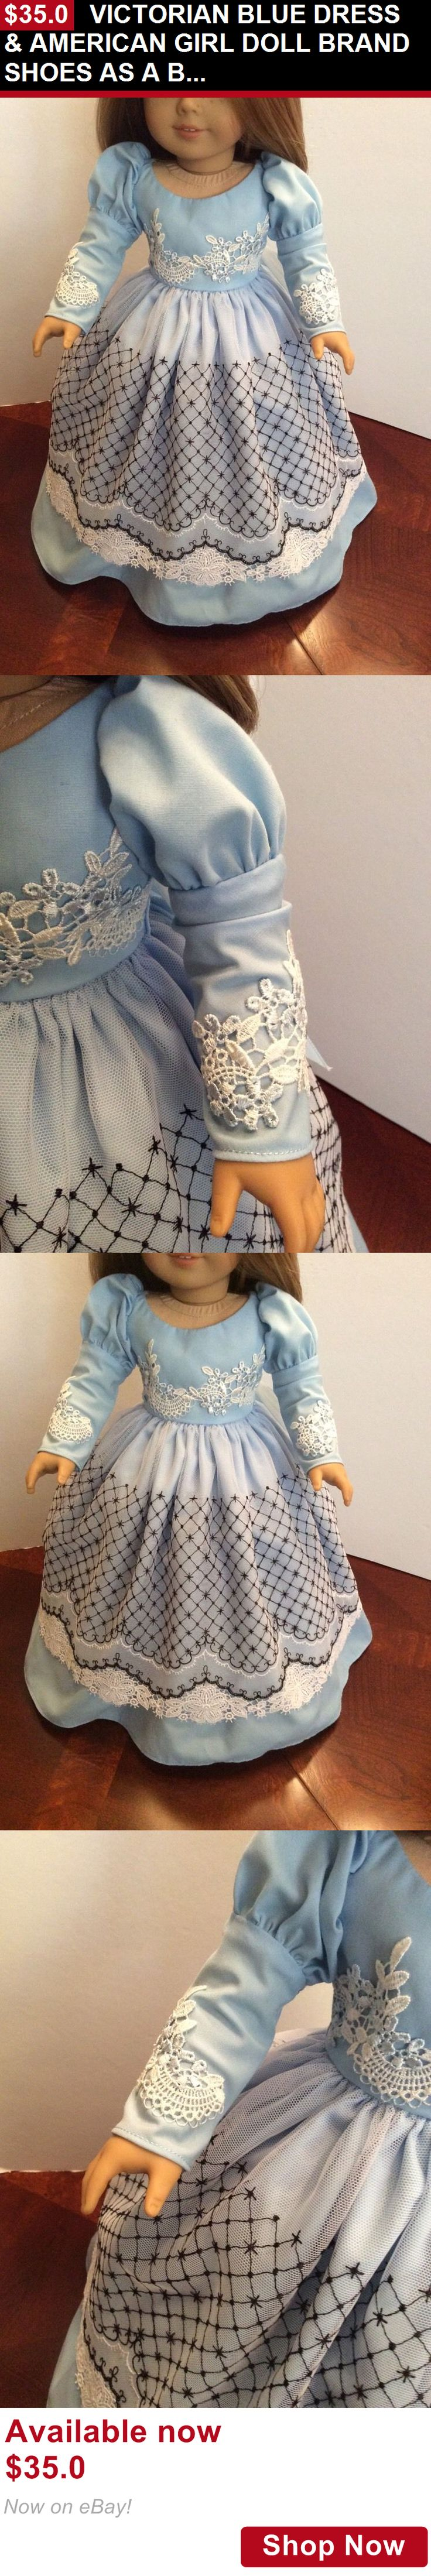 Telescope Cases And Bags: Victorian Blue Dress And American Girl Doll Brand Shoes As A Bonus 18 Dolls BUY IT NOW ONLY: $35.0